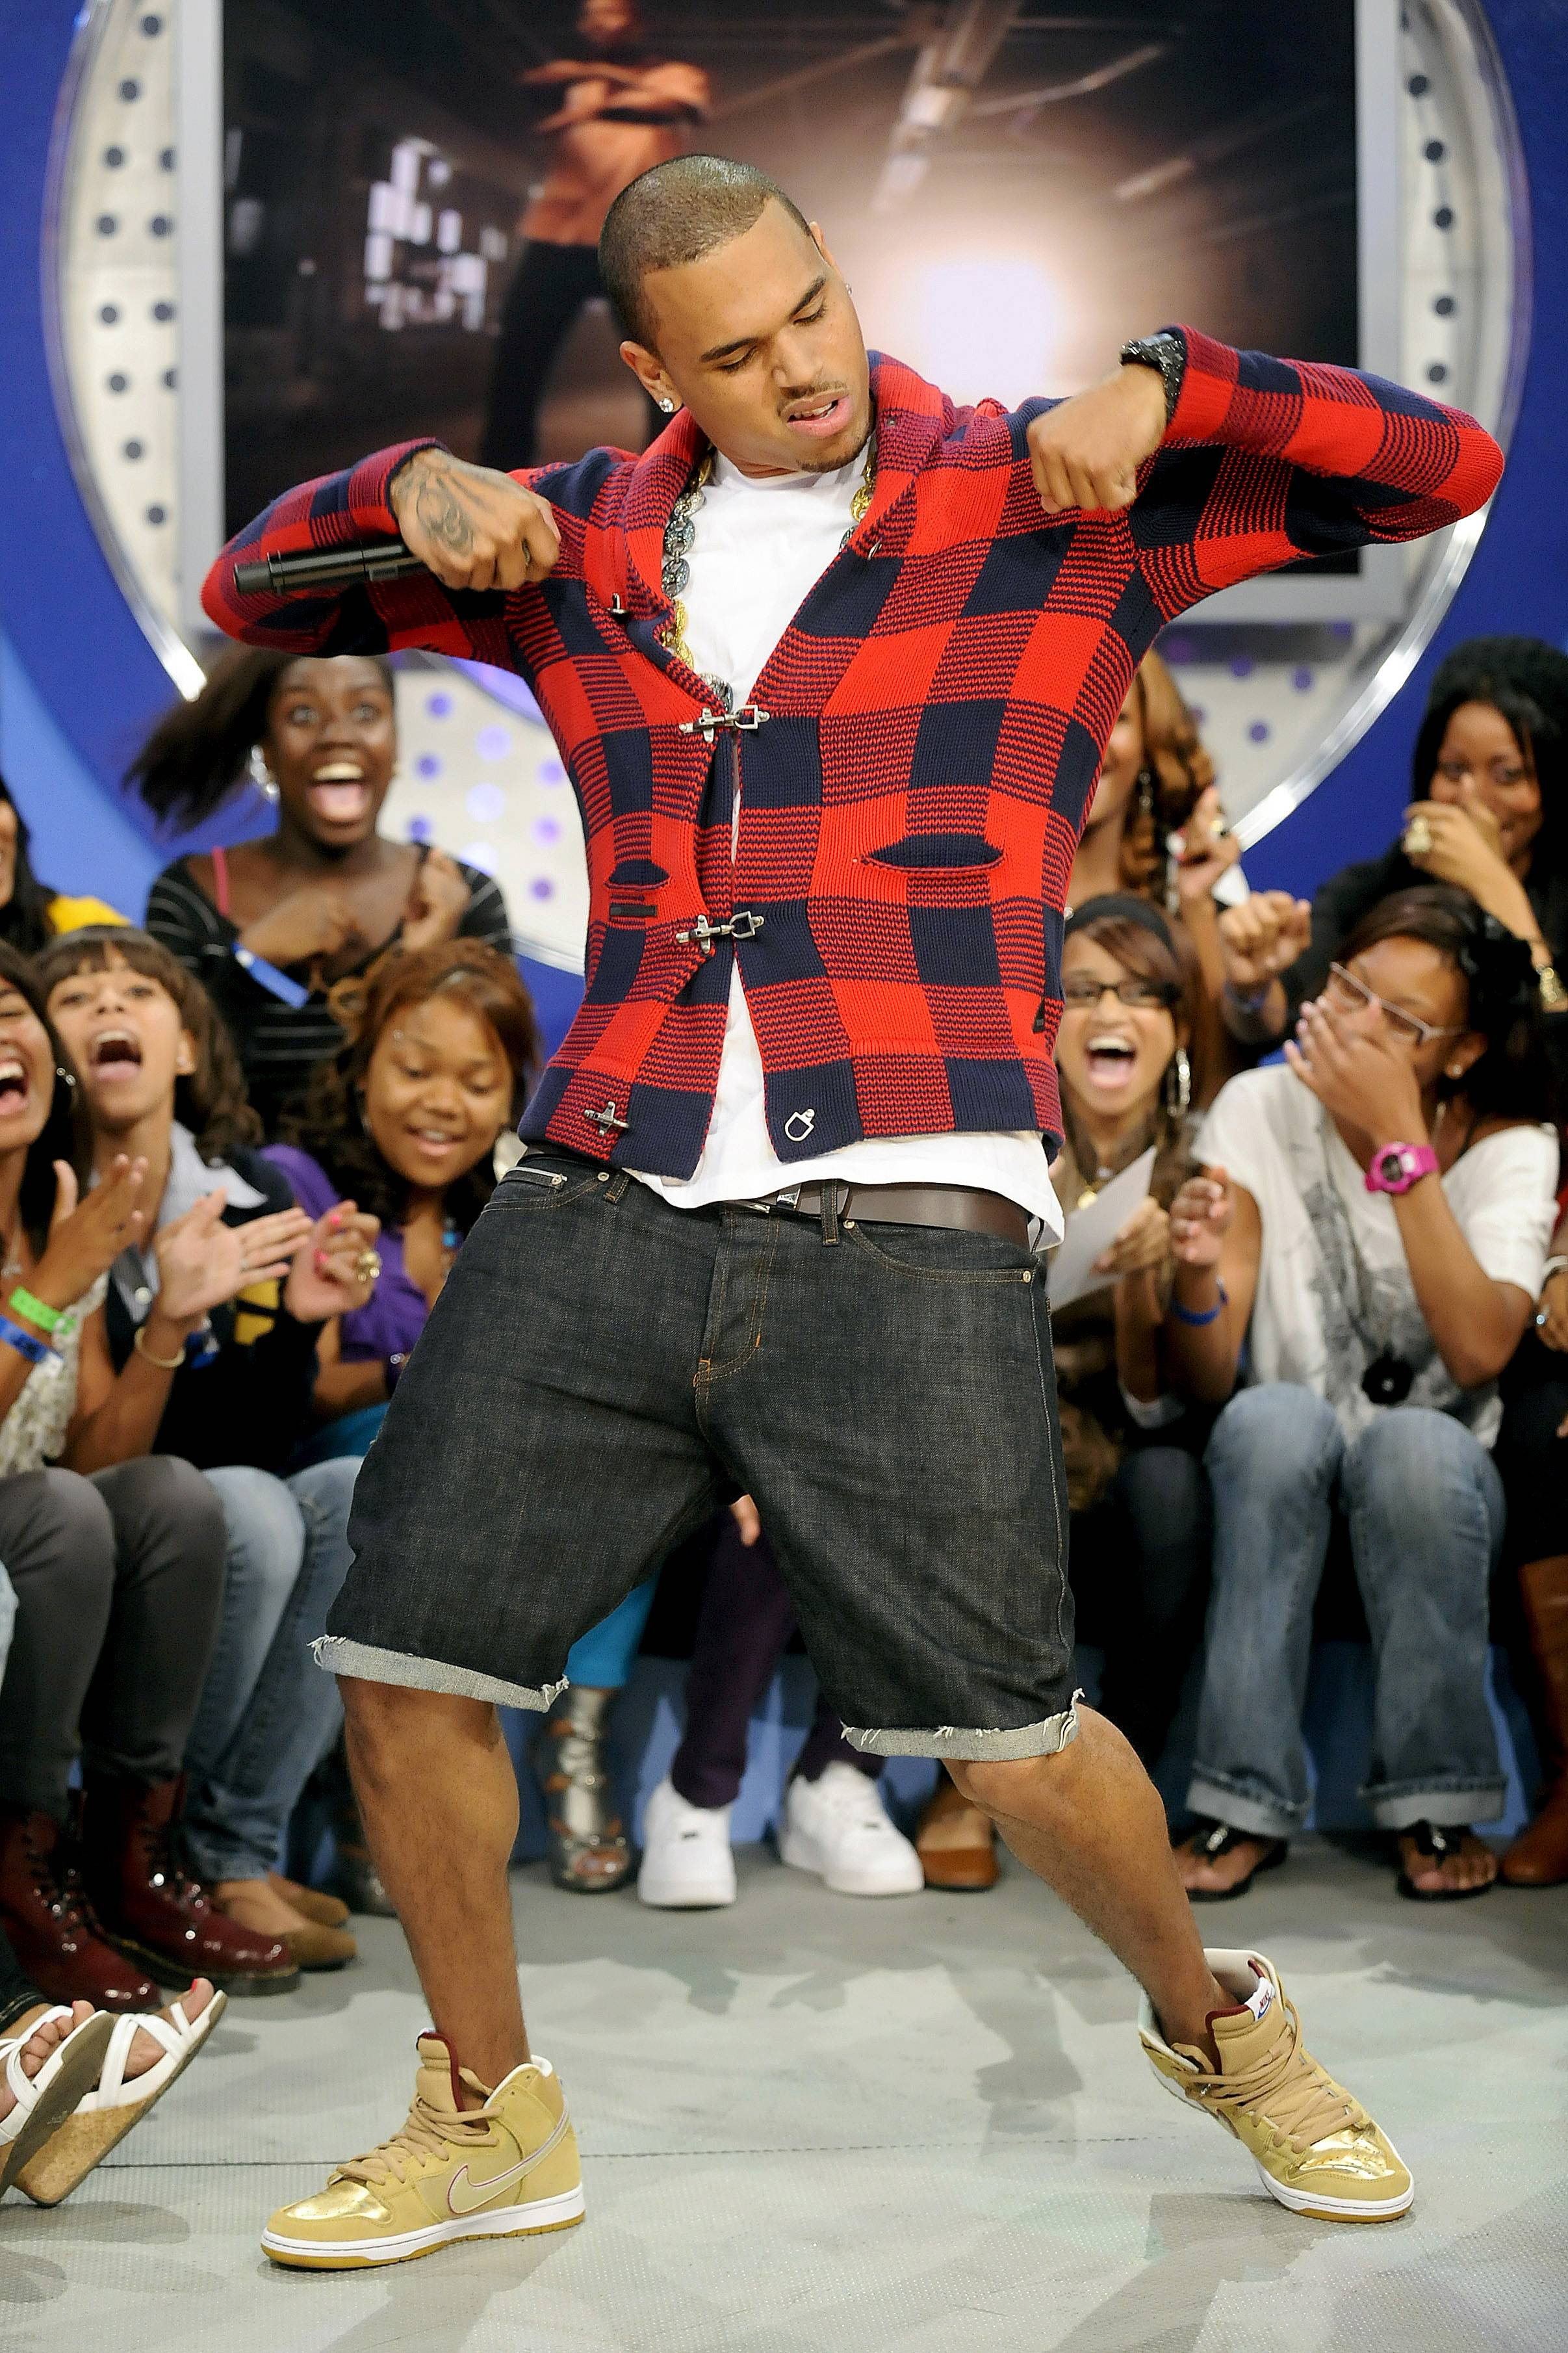 """Plaid and the Dougie - If you ever needed to learn how to """"Dougie,"""" Chris Brown could teach you since he's a certified pro when it comes to the dance.(Photo: Rob Loud/PictureGroup)"""